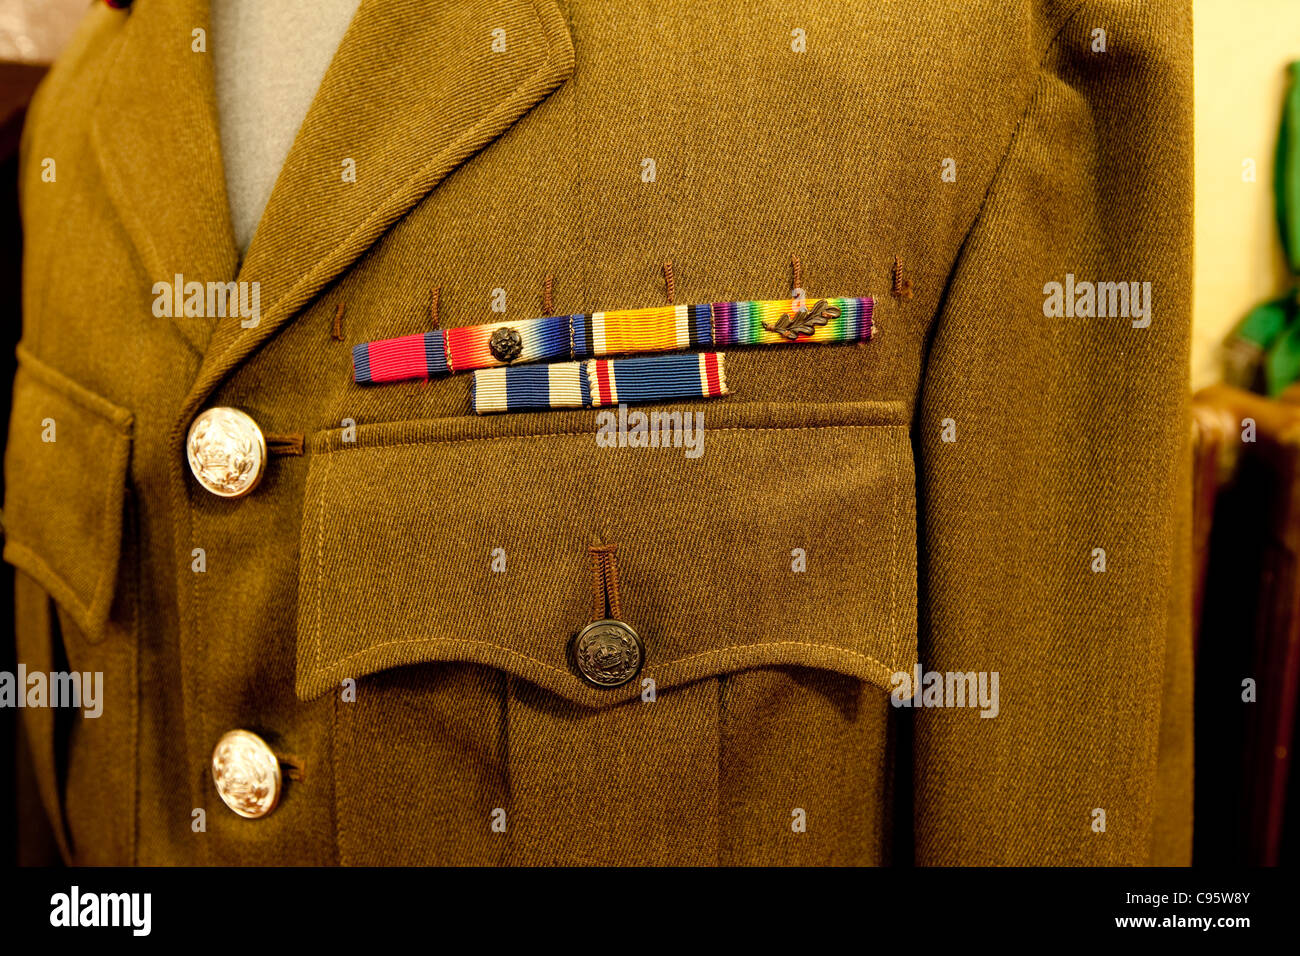 A British Military dress Uniform displaying colours or silks to describe medal awards for gallantry or campaigns. - Stock Image